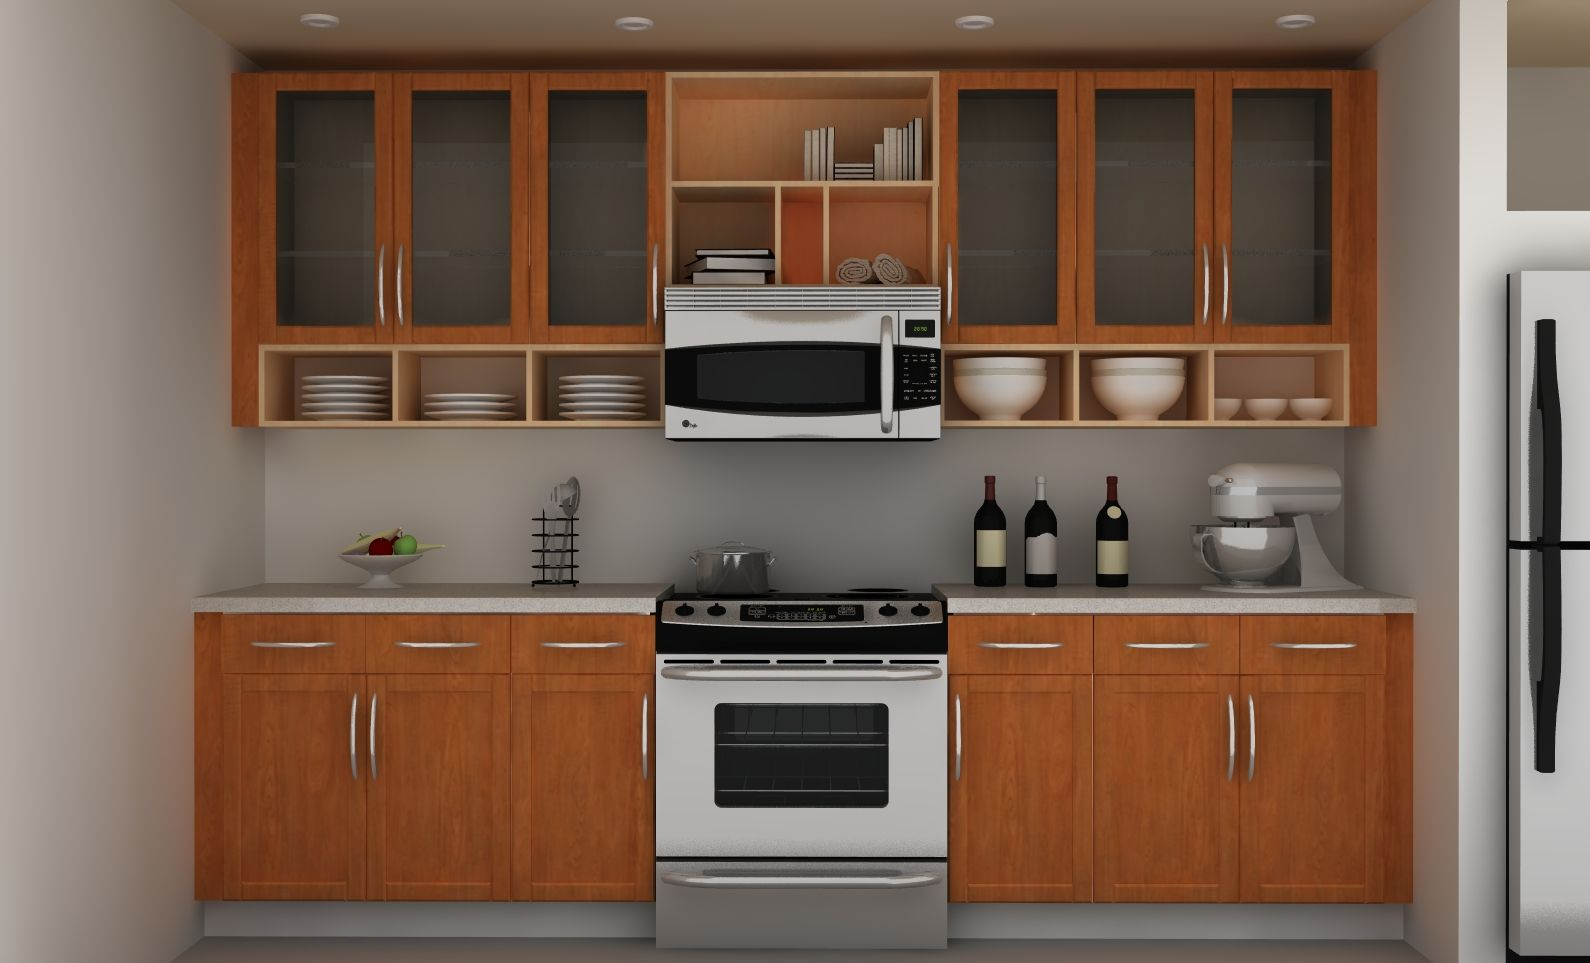 Kitchen Wall Cabinets For Easy Storage And Tidy Kitchen Kitchen